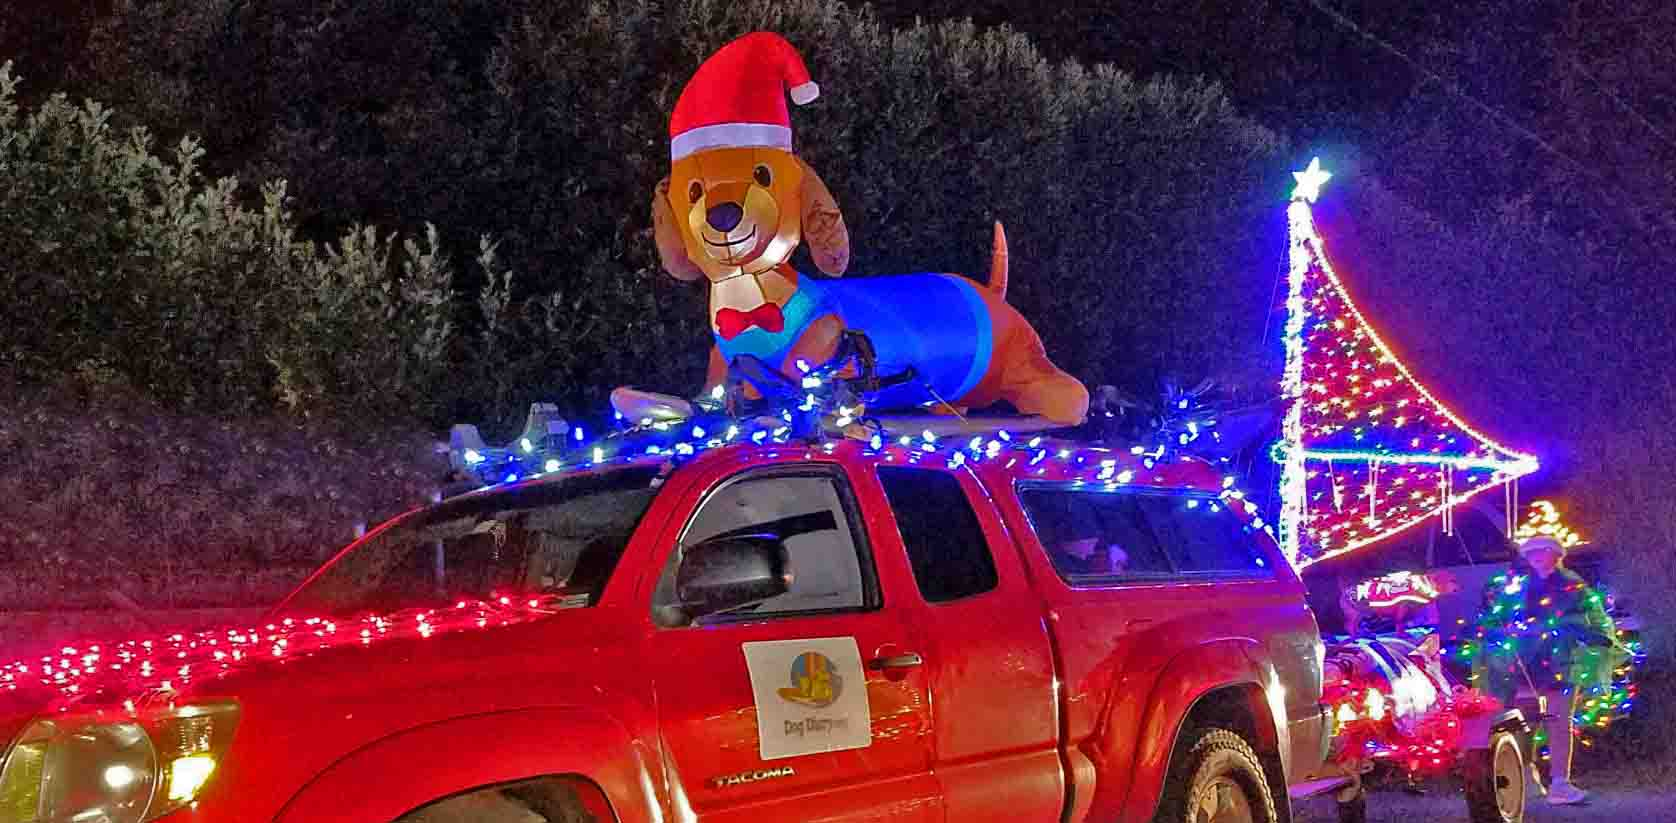 Surf dogs' 2018 Hood River Holiday parade float. Photo: (c) Barb Ayers, DogDiary.org